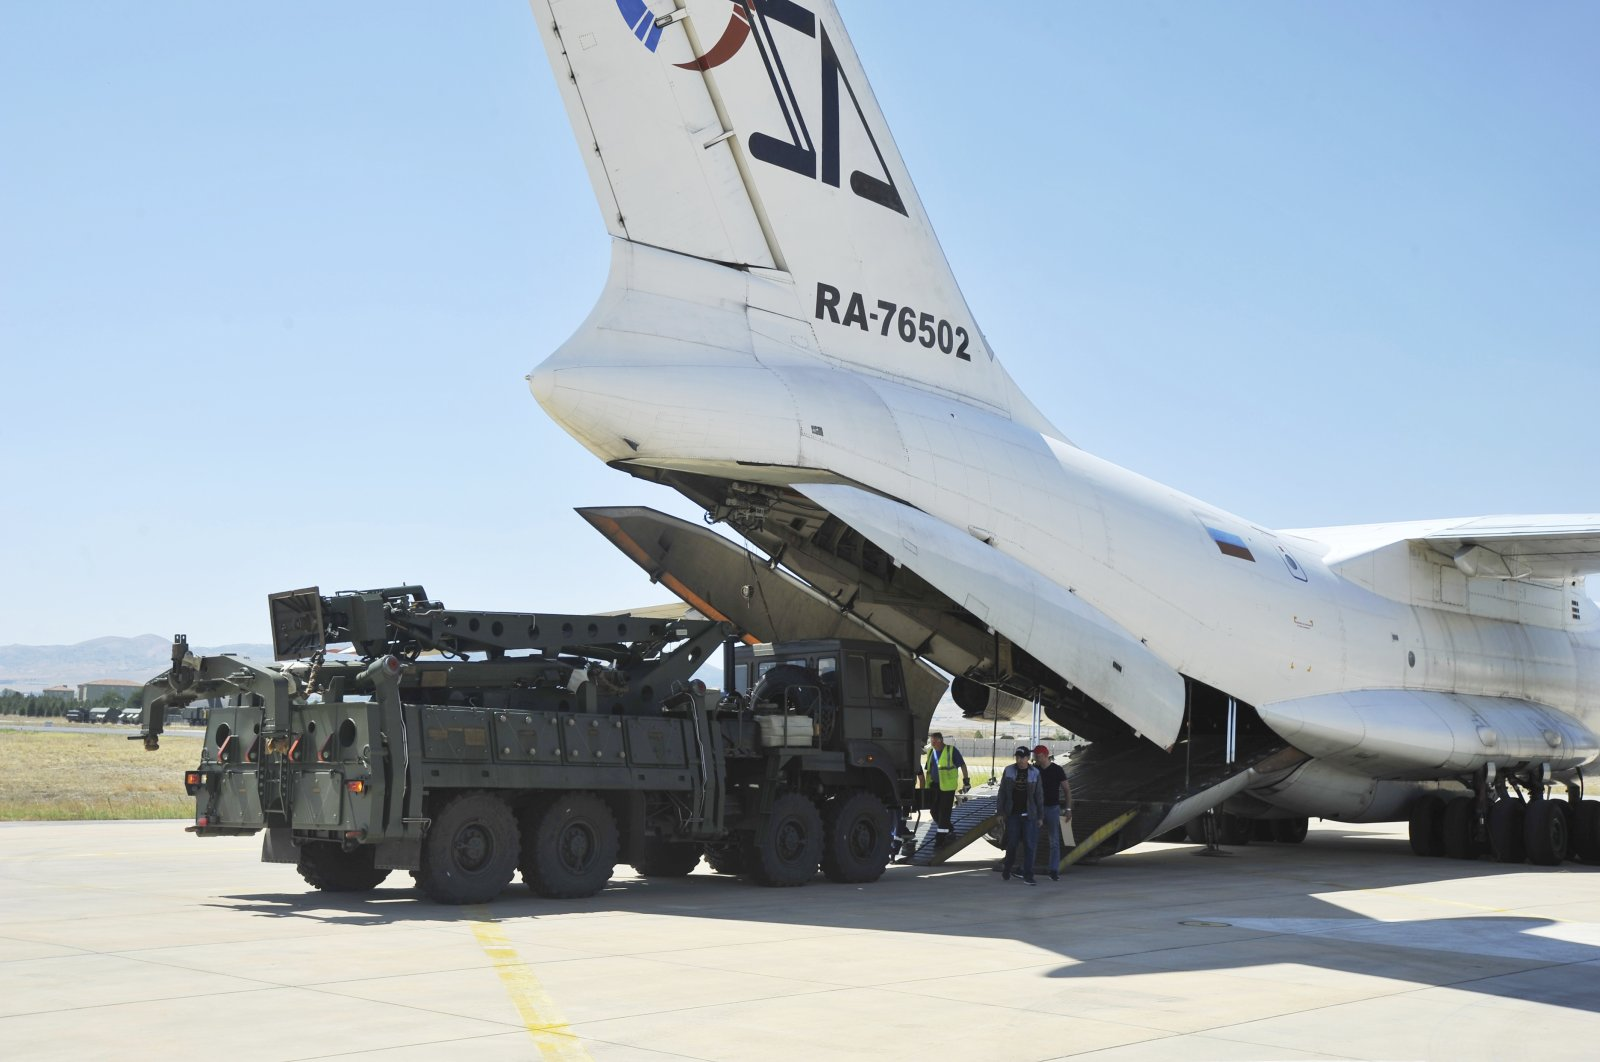 Military officials work around a Russian transport aircraft, carrying parts of the S-400 air defense systems, after it landed at Murted military airport outside Ankara, Turkey, Aug. 27, 2019. (Turkish Defense Ministry via AP, Pool)